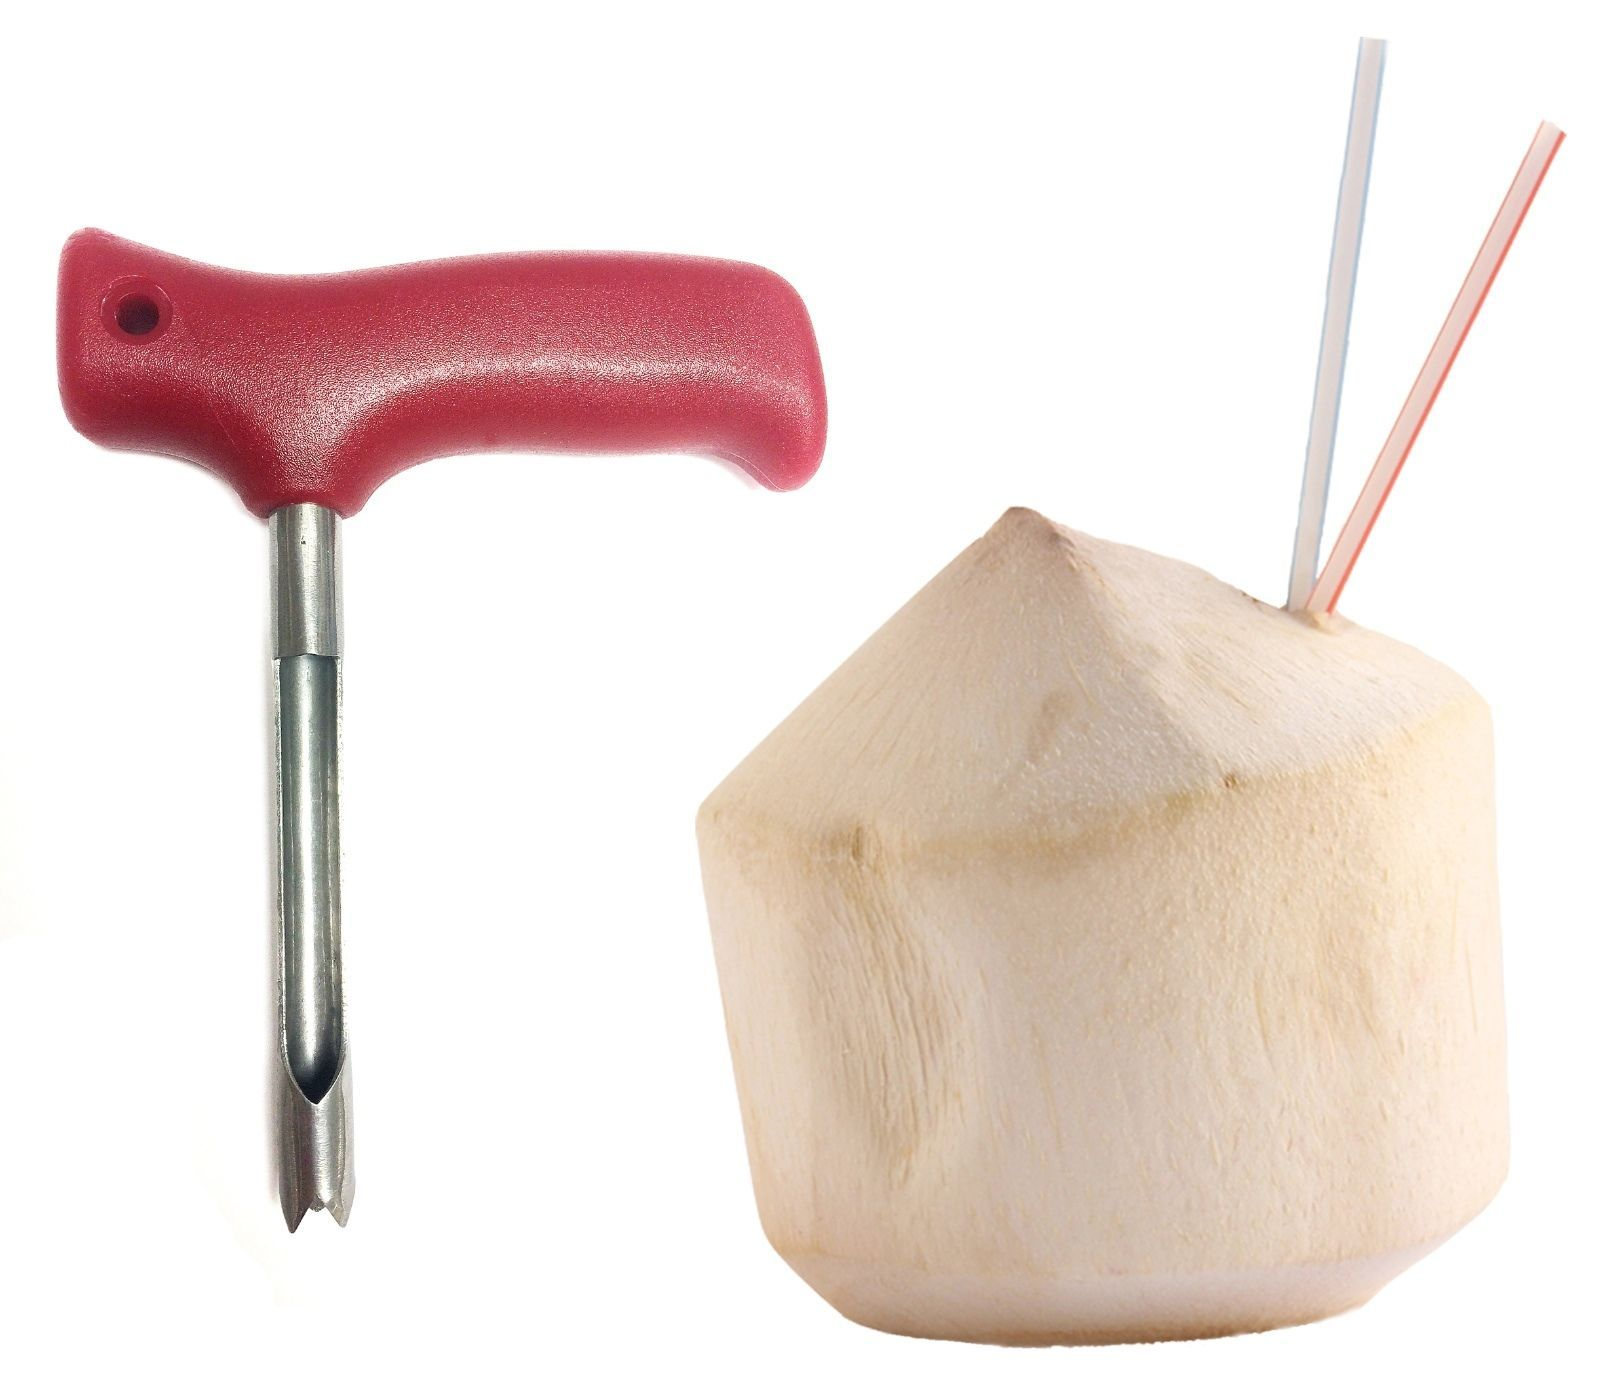 Red Coconut Opening Tool Coco push punch tap poke  hole extractor knife opener